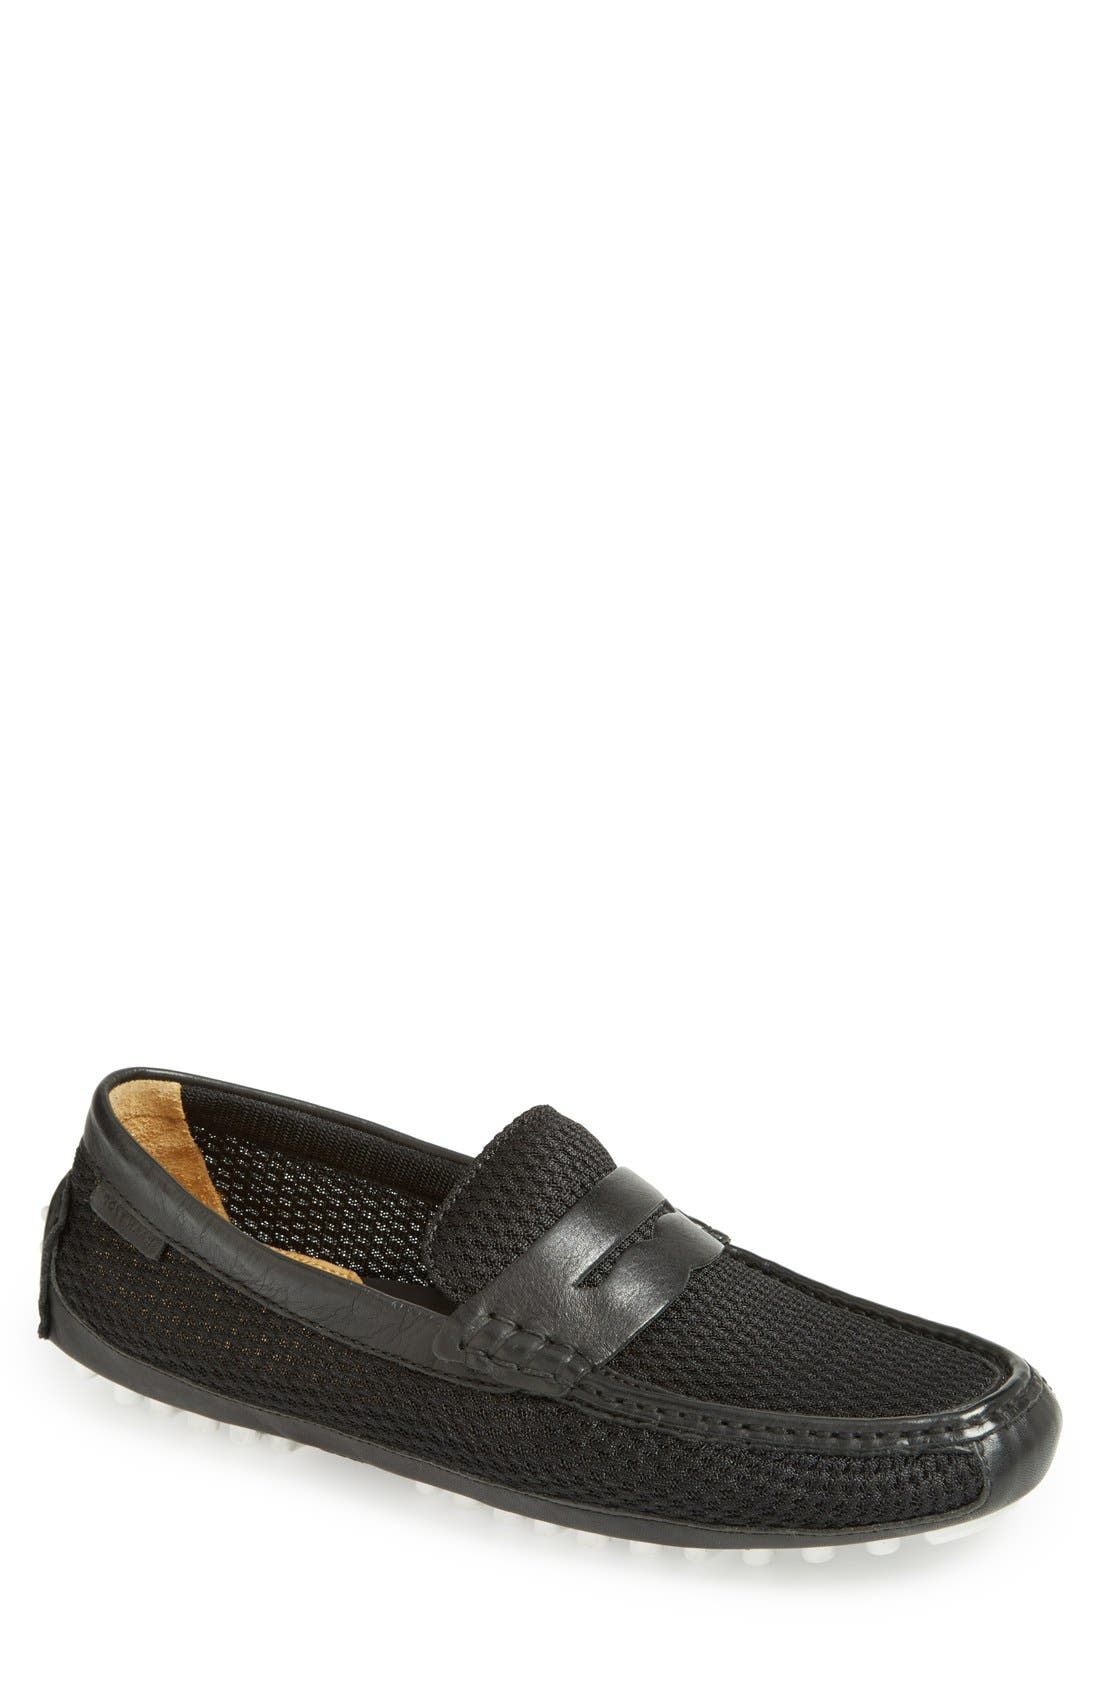 Alternate Image 1 Selected - Cole Haan 'Grant Canoe' Penny Loafer   (Men)